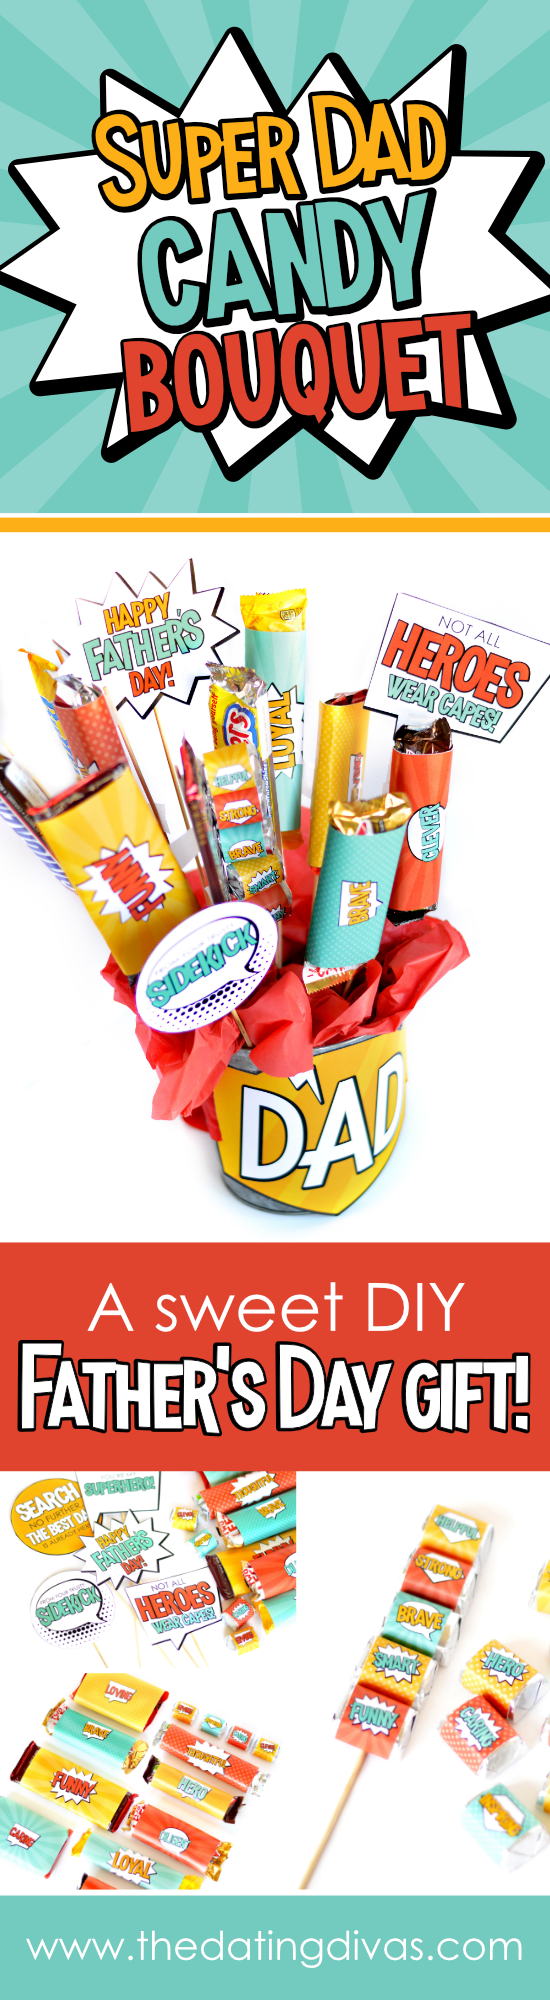 Stop desperately searching for a thoughtful Father's Day gift and give a homemade Father's Day gift that he's sure to love. Get everything you need to make a candy bar gift basket bouquet that's filled with his favorite treats and kind words that describe him as a dad, making it delicious and meaningful! #superherofathersday #superdad #candybouquet #fathersdaygift #giftbasketsformen